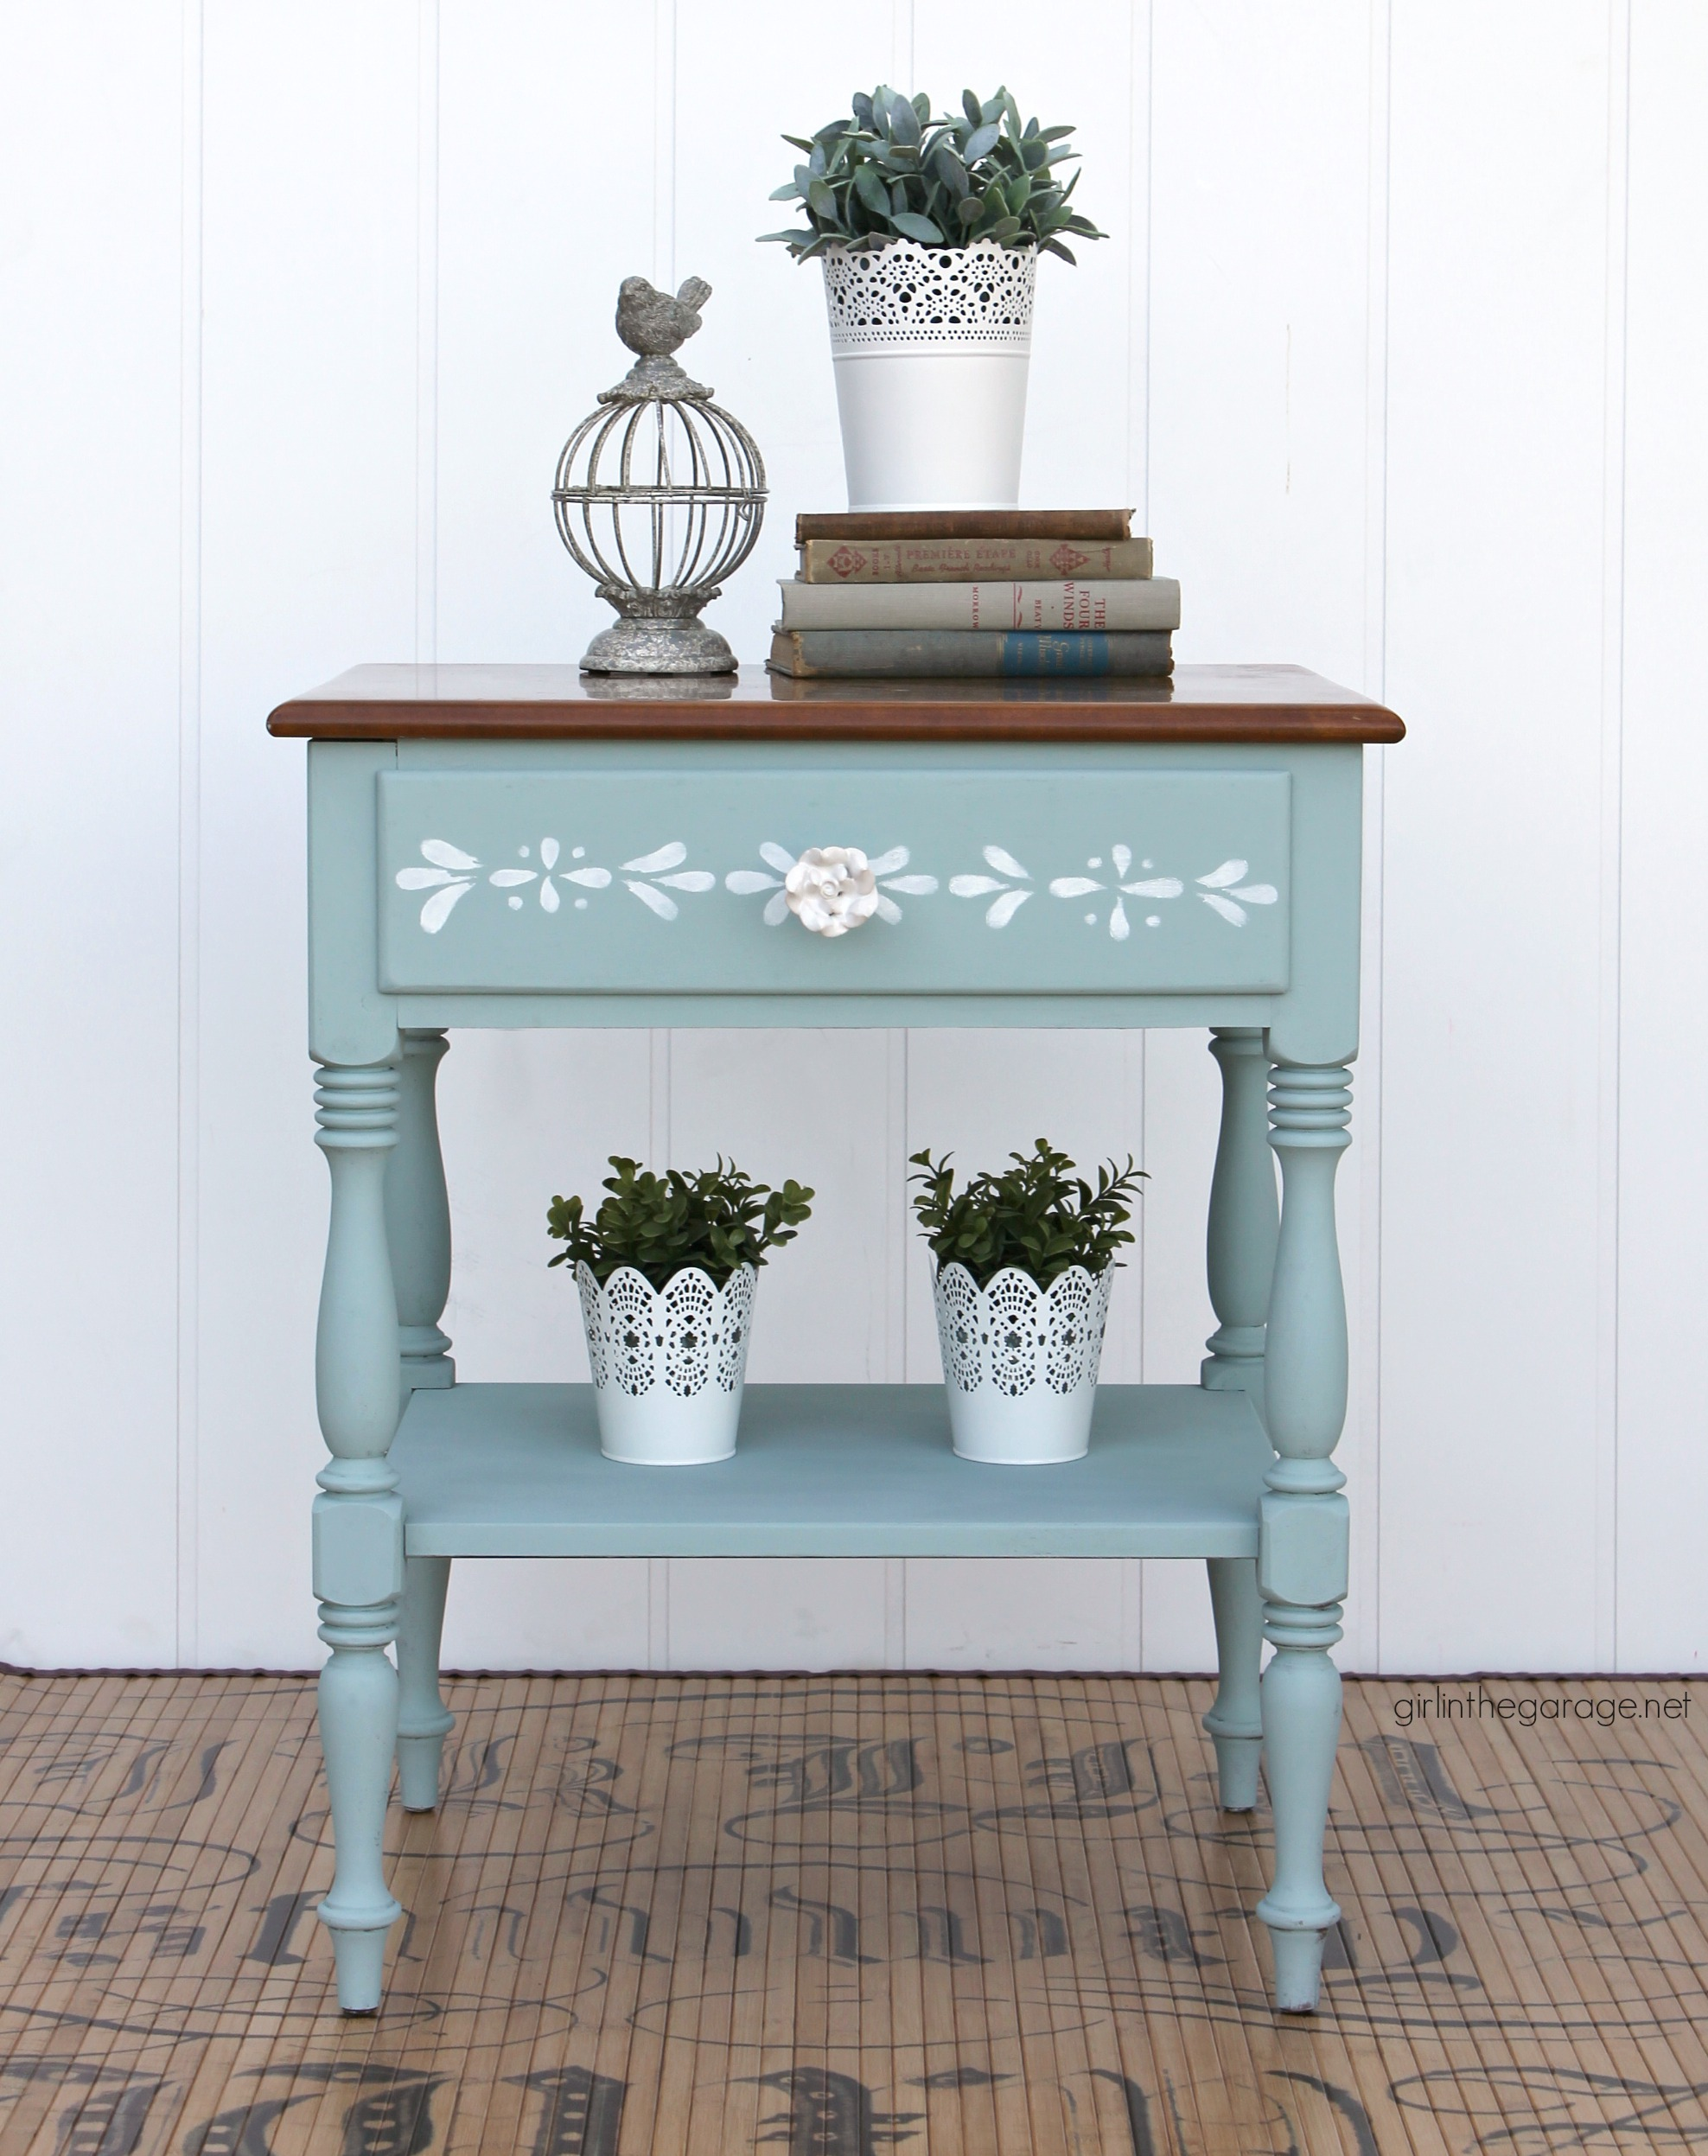 Charming painted Ethan Allen nightstand - How to Chalk Paint and stencil Ethan Allen furniture - Painted furniture ideas by Girl in the Garage